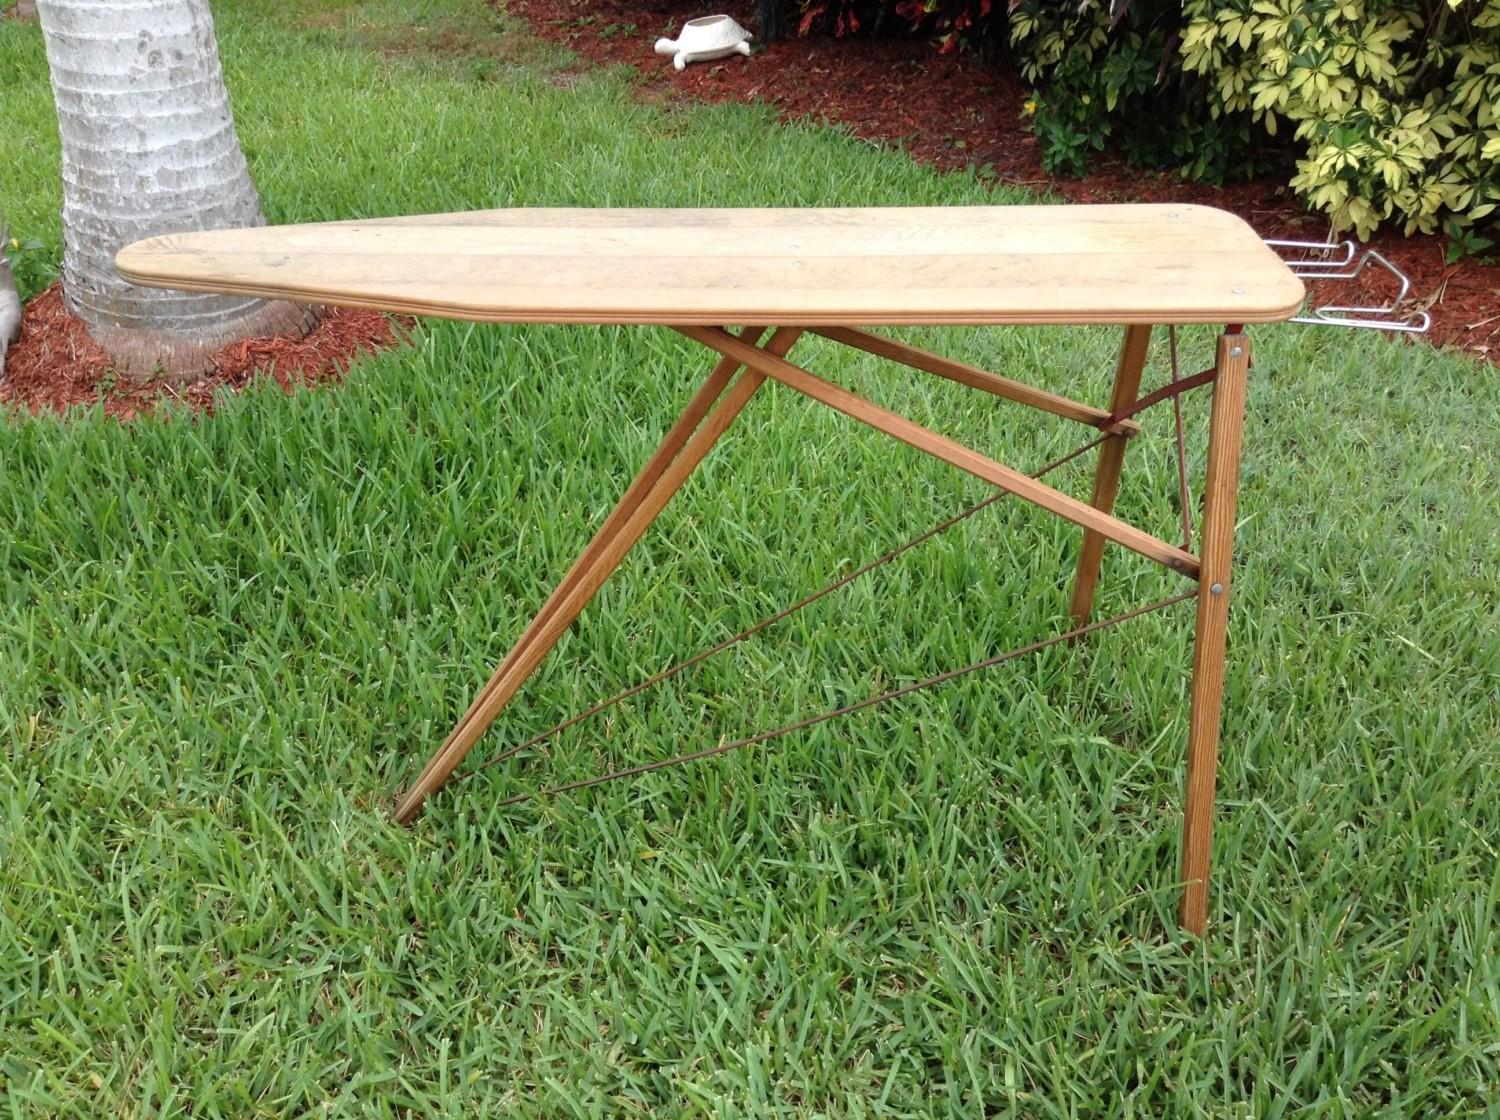 Vintage Wooden Folding Ironing Board Laundry Table